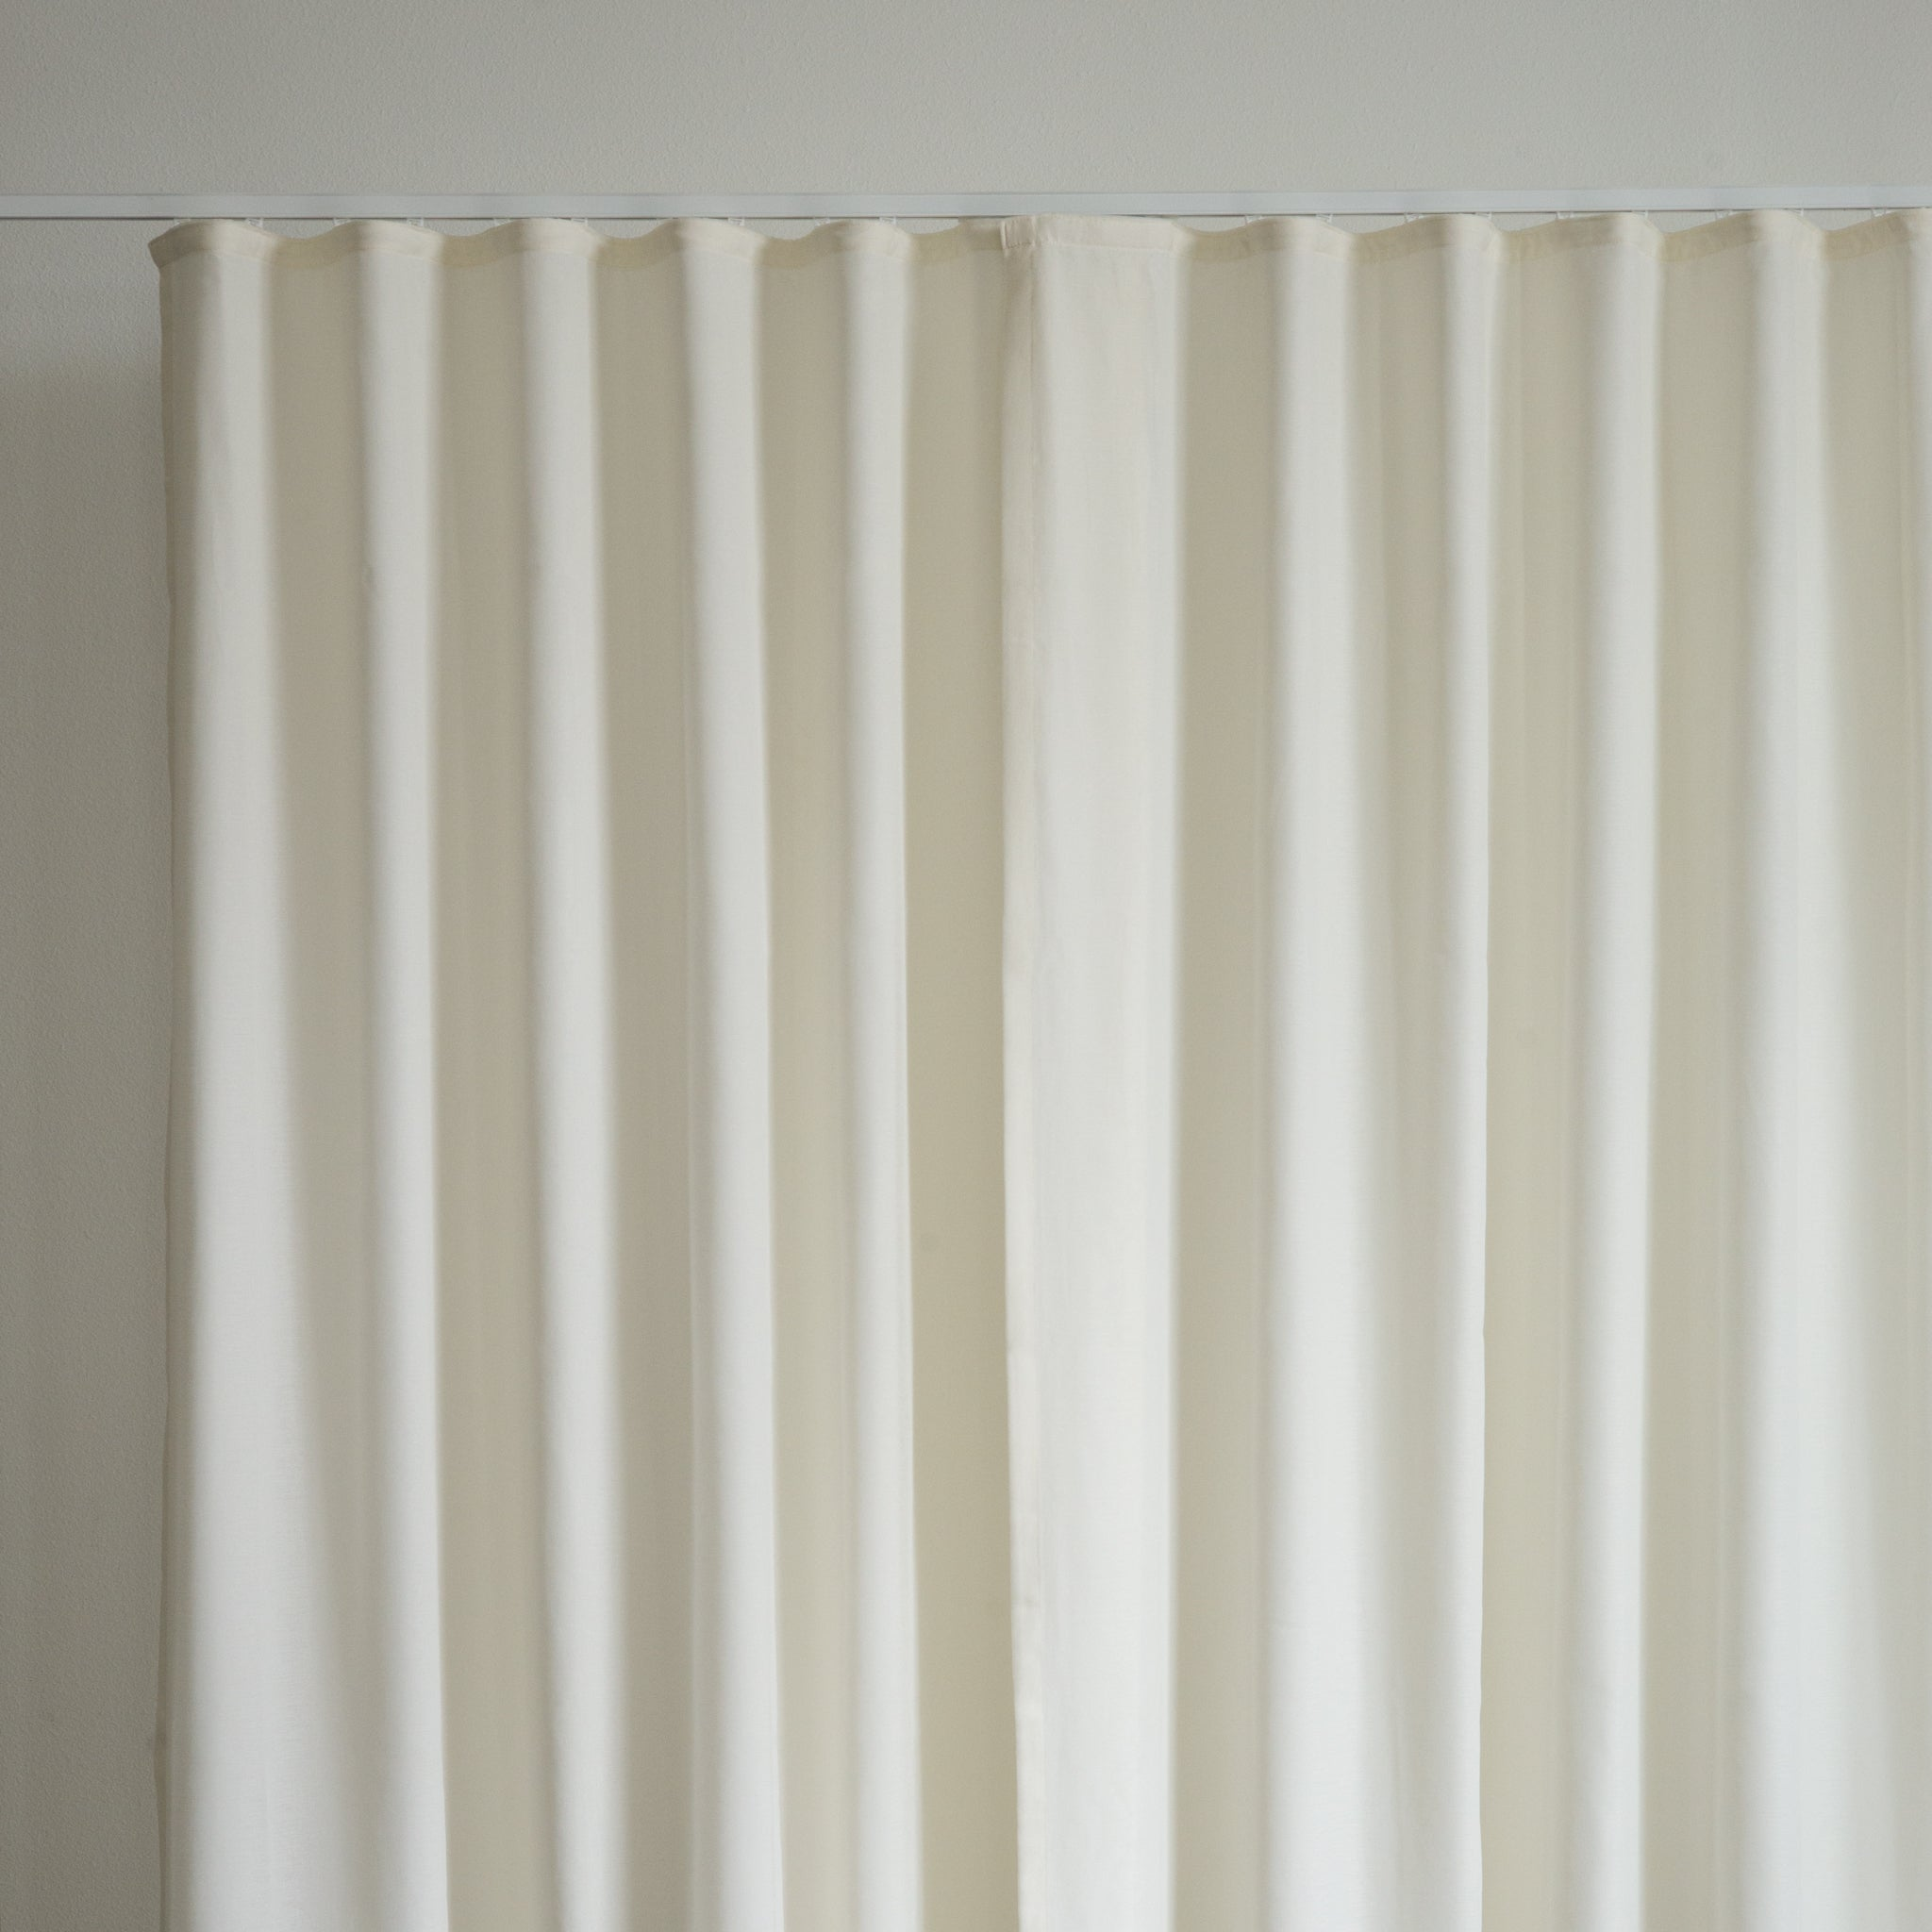 How to decide on the custom curtain fullness ripple fold and grommet